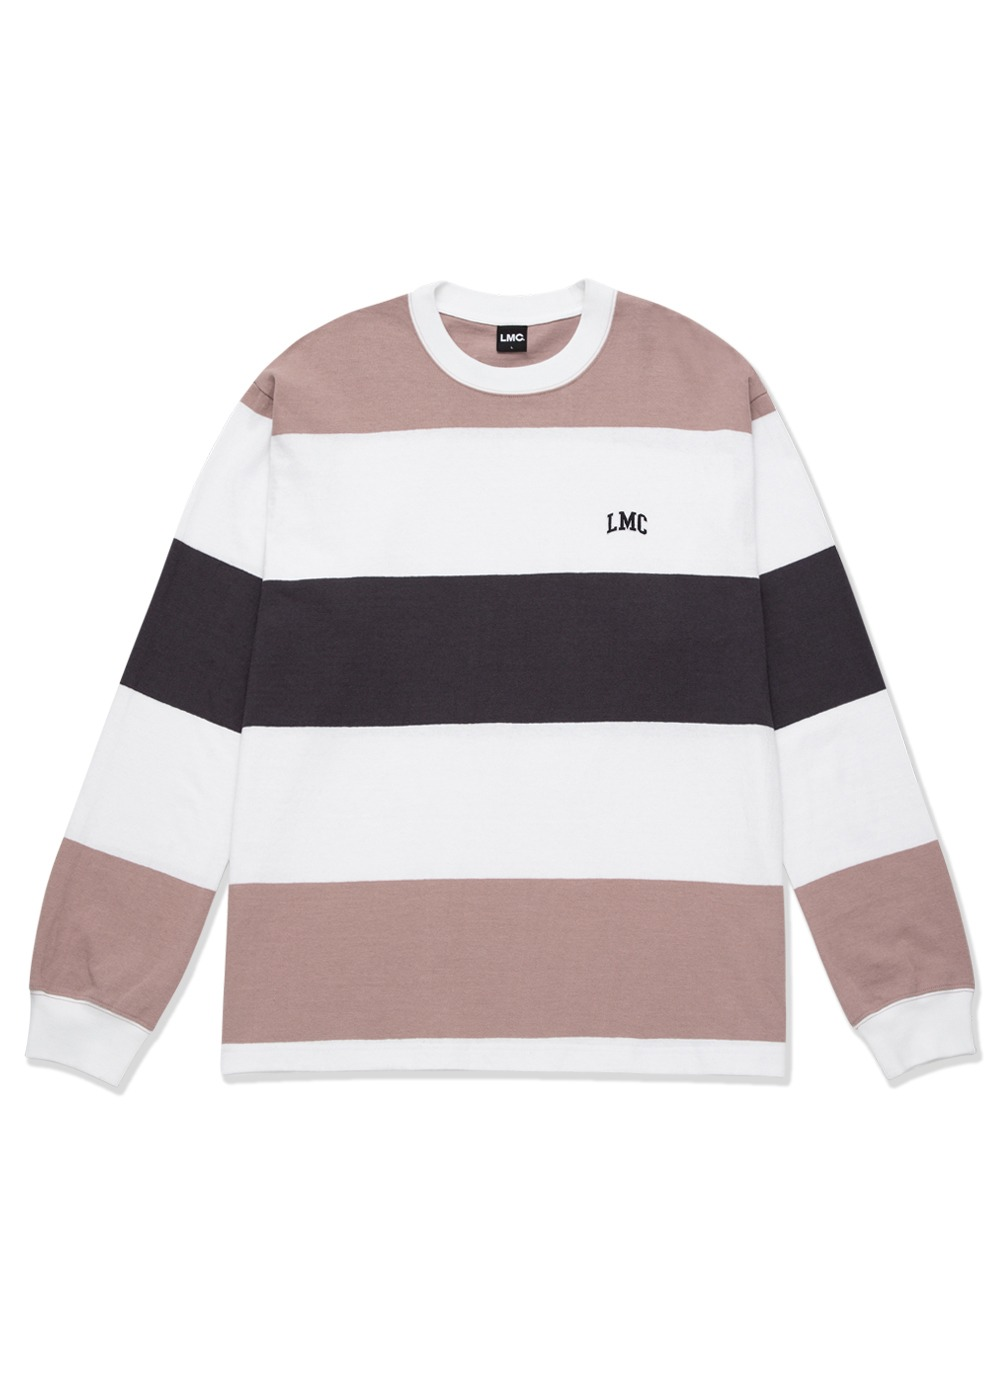 LMC BORDER STRIPE LONG SLV TEE gray pink